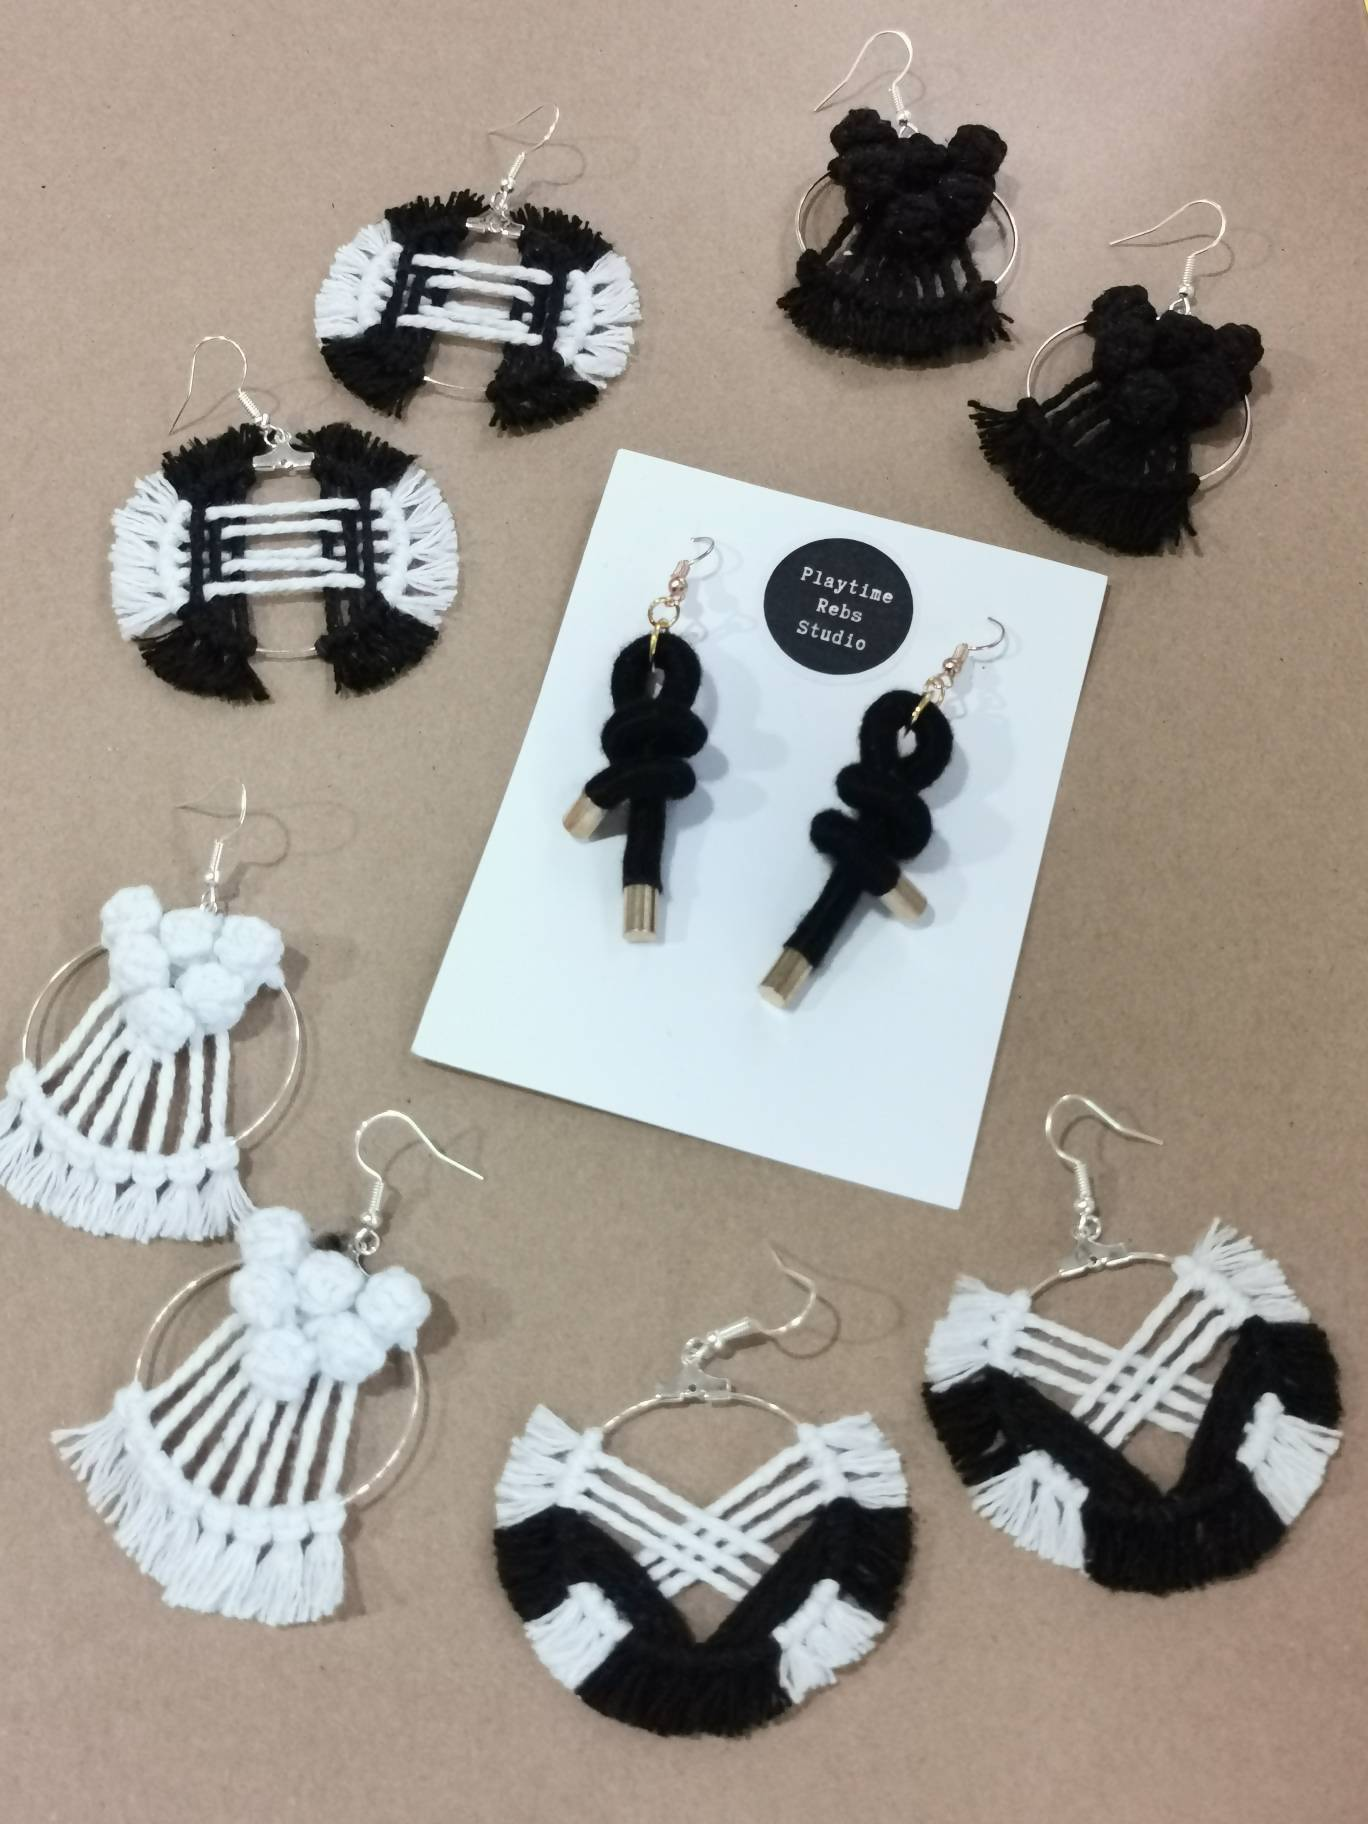 Wakanda Macrame Hoop Earrings - Monotone - Earrings - Playtime Rebs Studio - Naiise